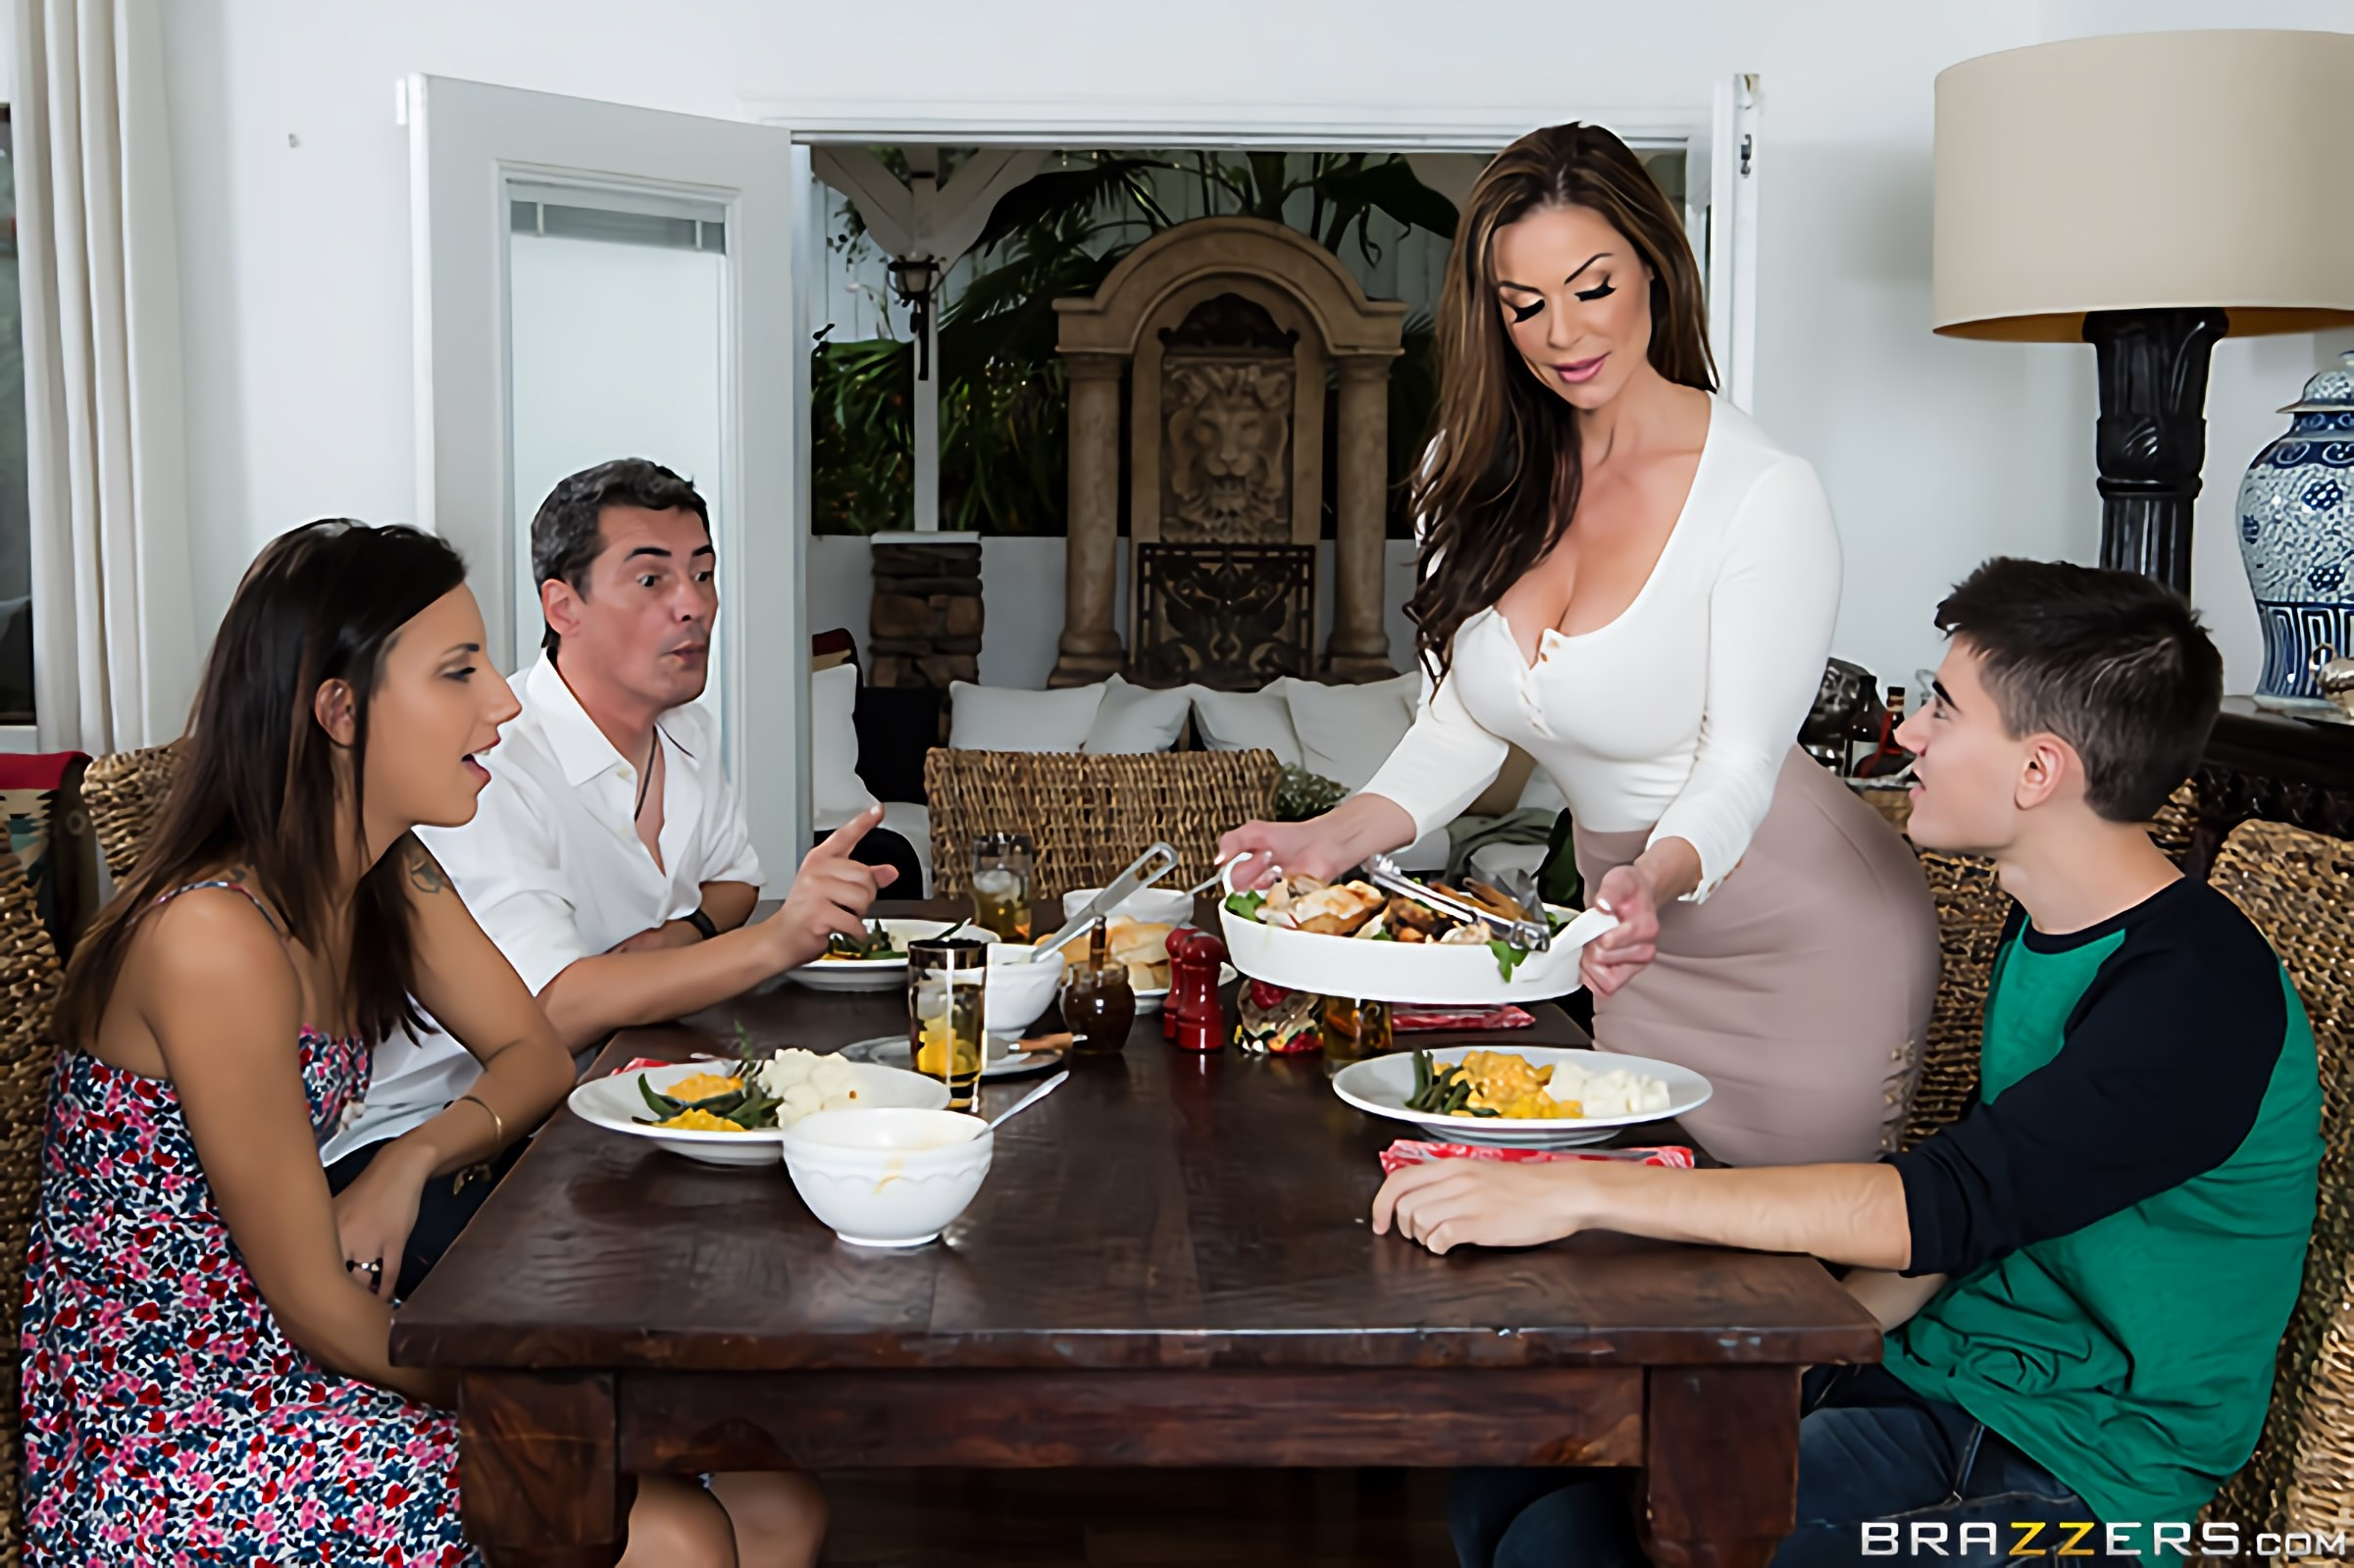 Brazzers 'Kendras Thanksgiving Stuffing' starring Kendra Lust (Photo 6)